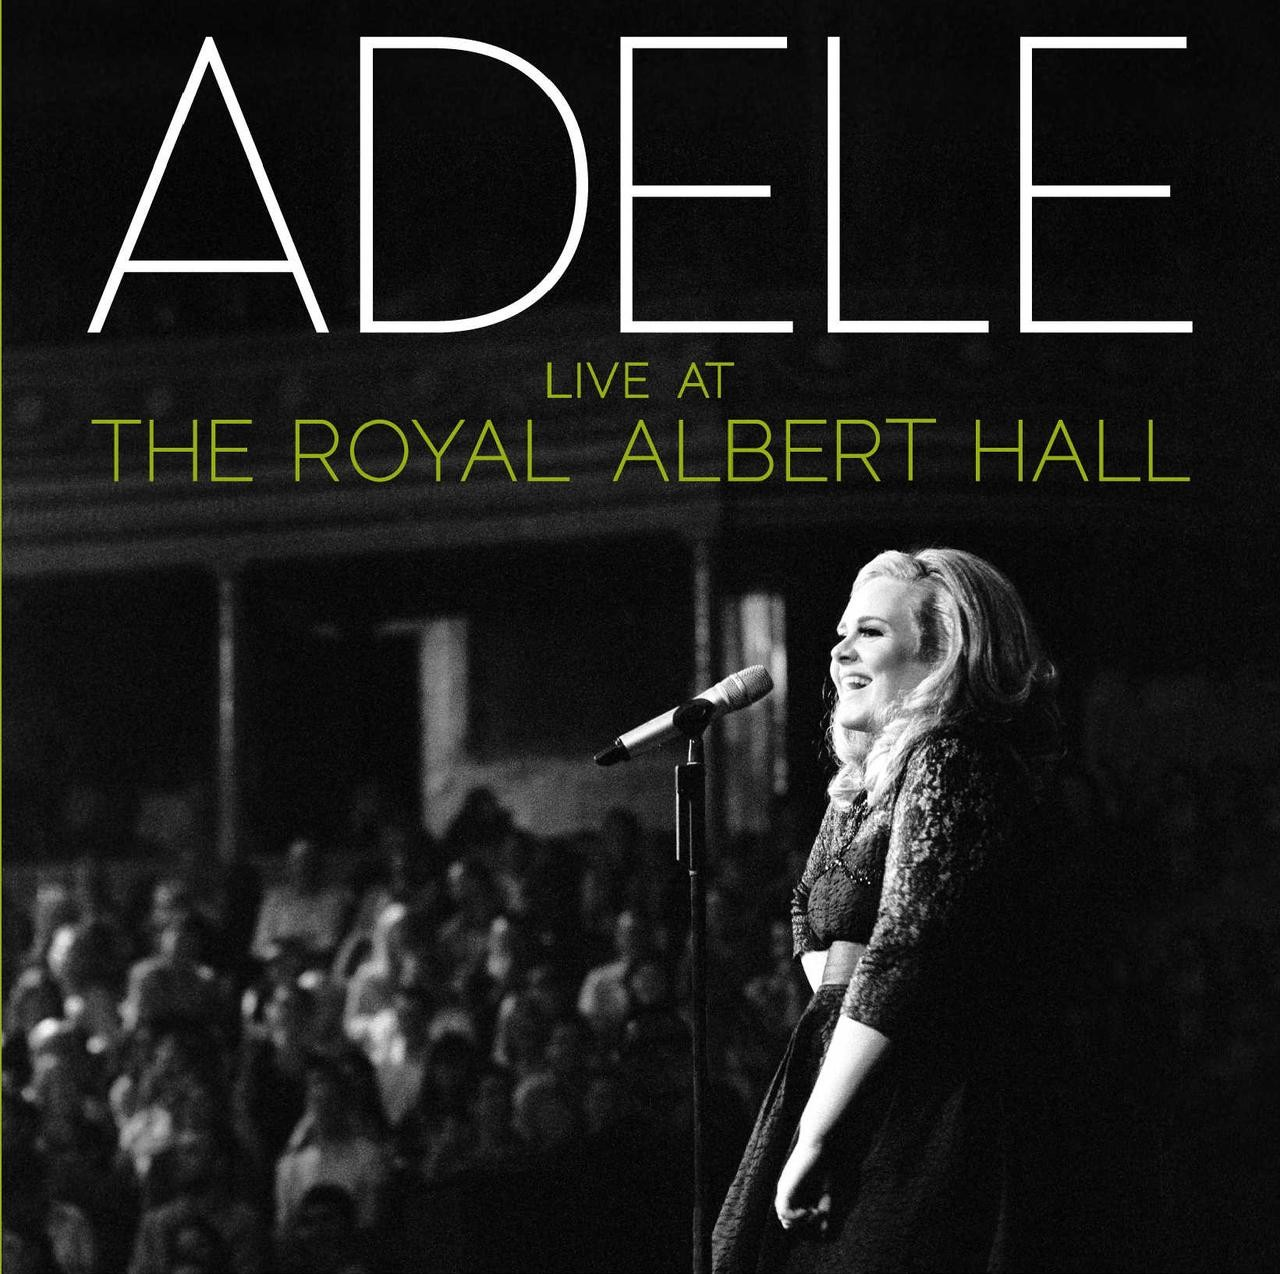 http://2.bp.blogspot.com/-xMKBK1l8QnM/UORxMDMo1FI/AAAAAAAAAx4/DLULez7mmjw/s1600/Adele+-+Live+at+The+Royal+Albert+Hall+(2011).jpg